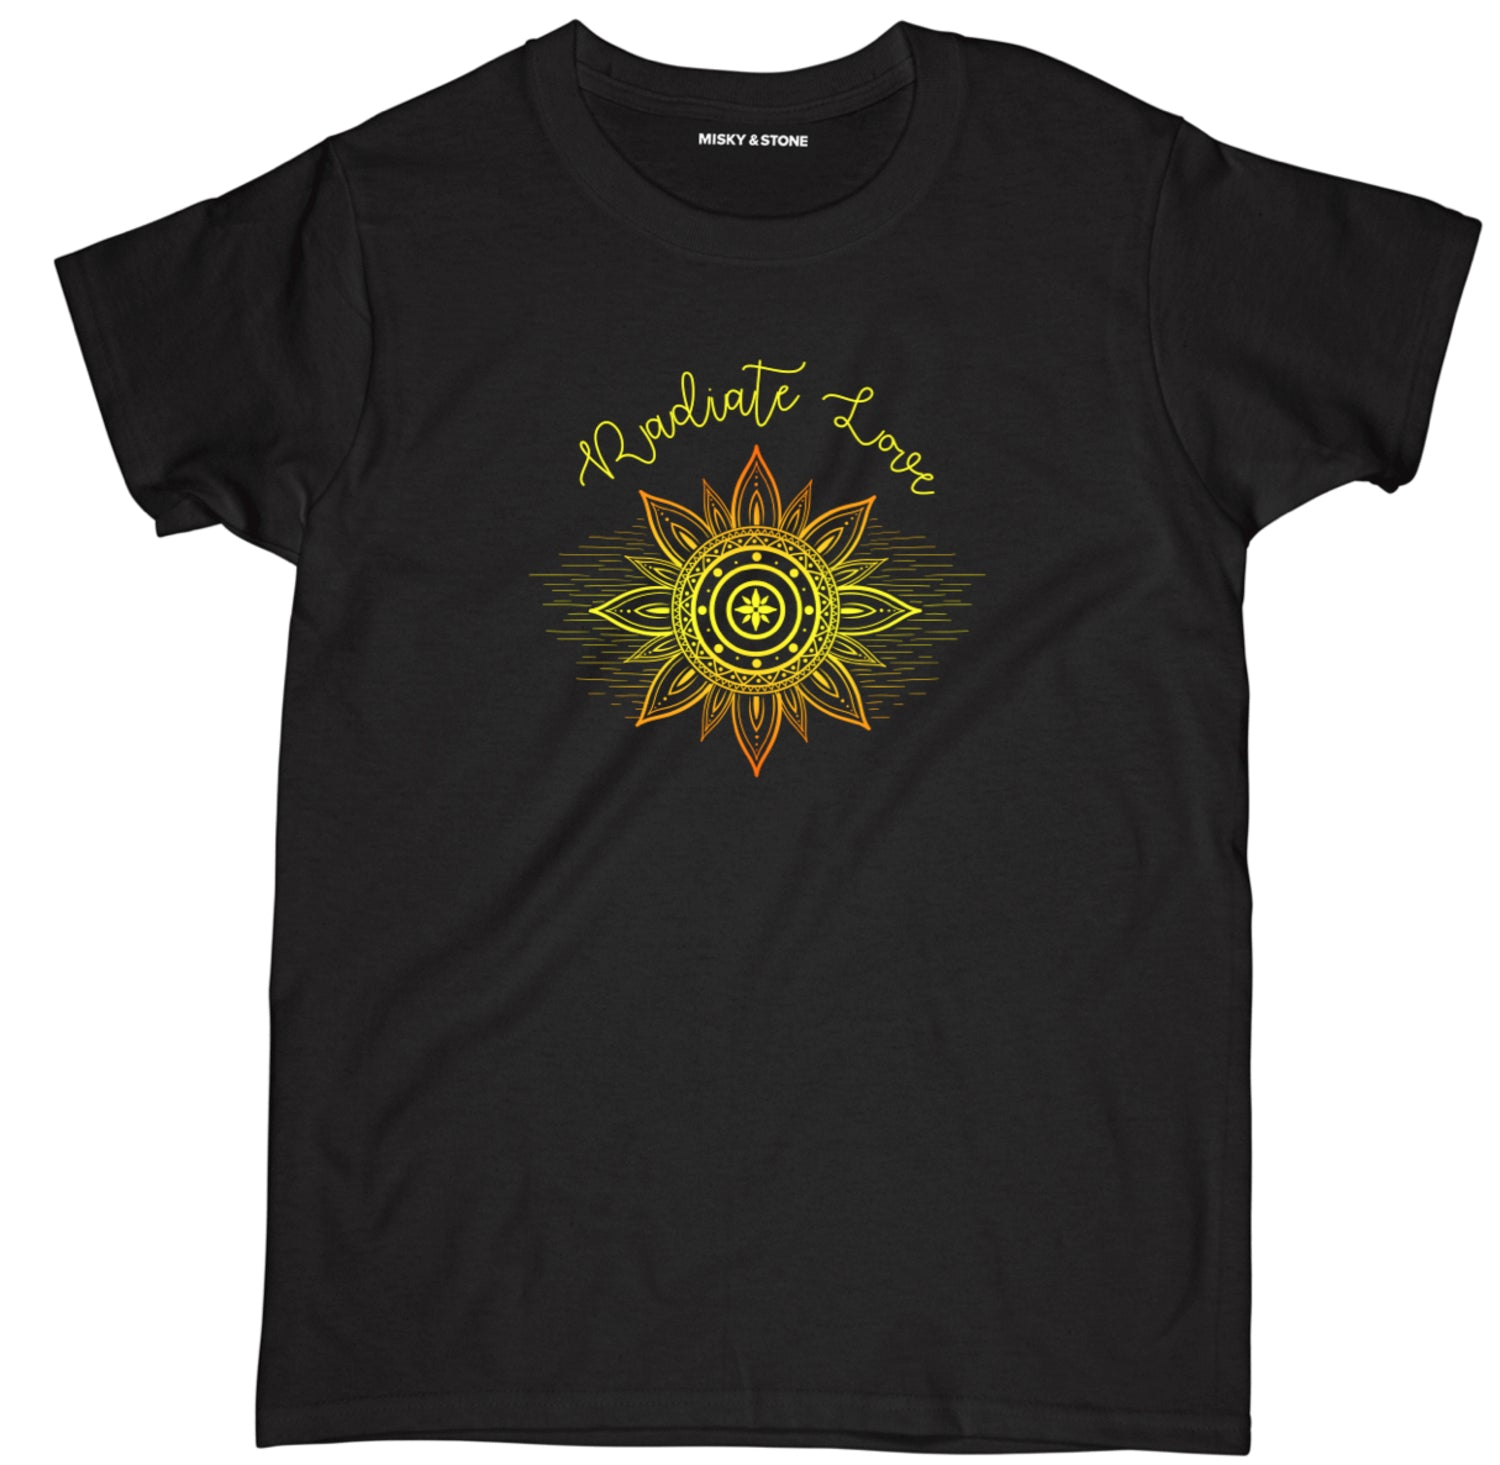 radiate Love spiritual tee shirt, RADIATE LOVE spiritual apparel, RADIATE LOVE spiritual merch, spiritual clothing, spiritual quote t shirt,